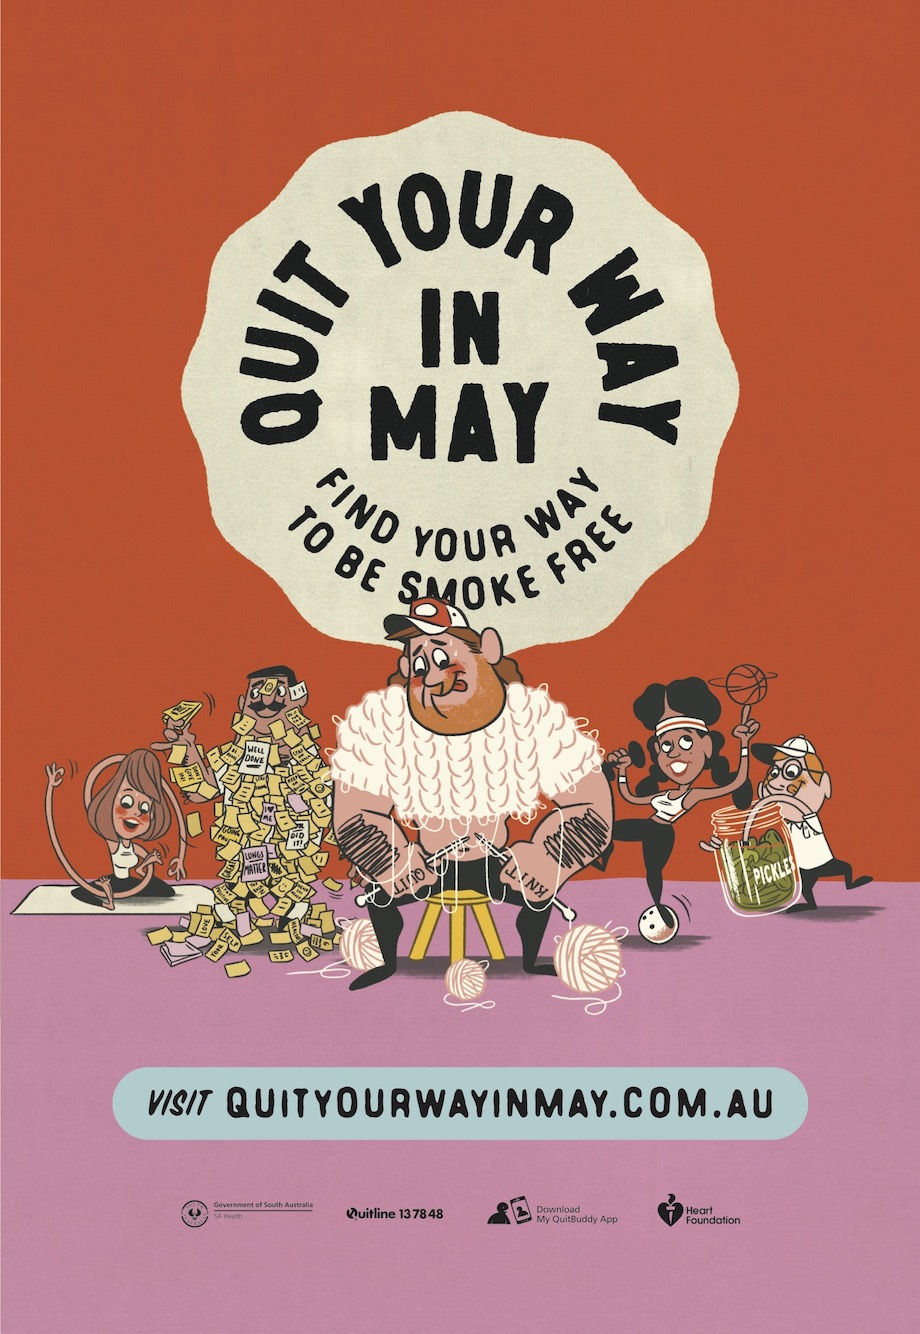 Smokers encouraged to 'Quit Your Way in May' in new animated campaign via Showpony Adelaide